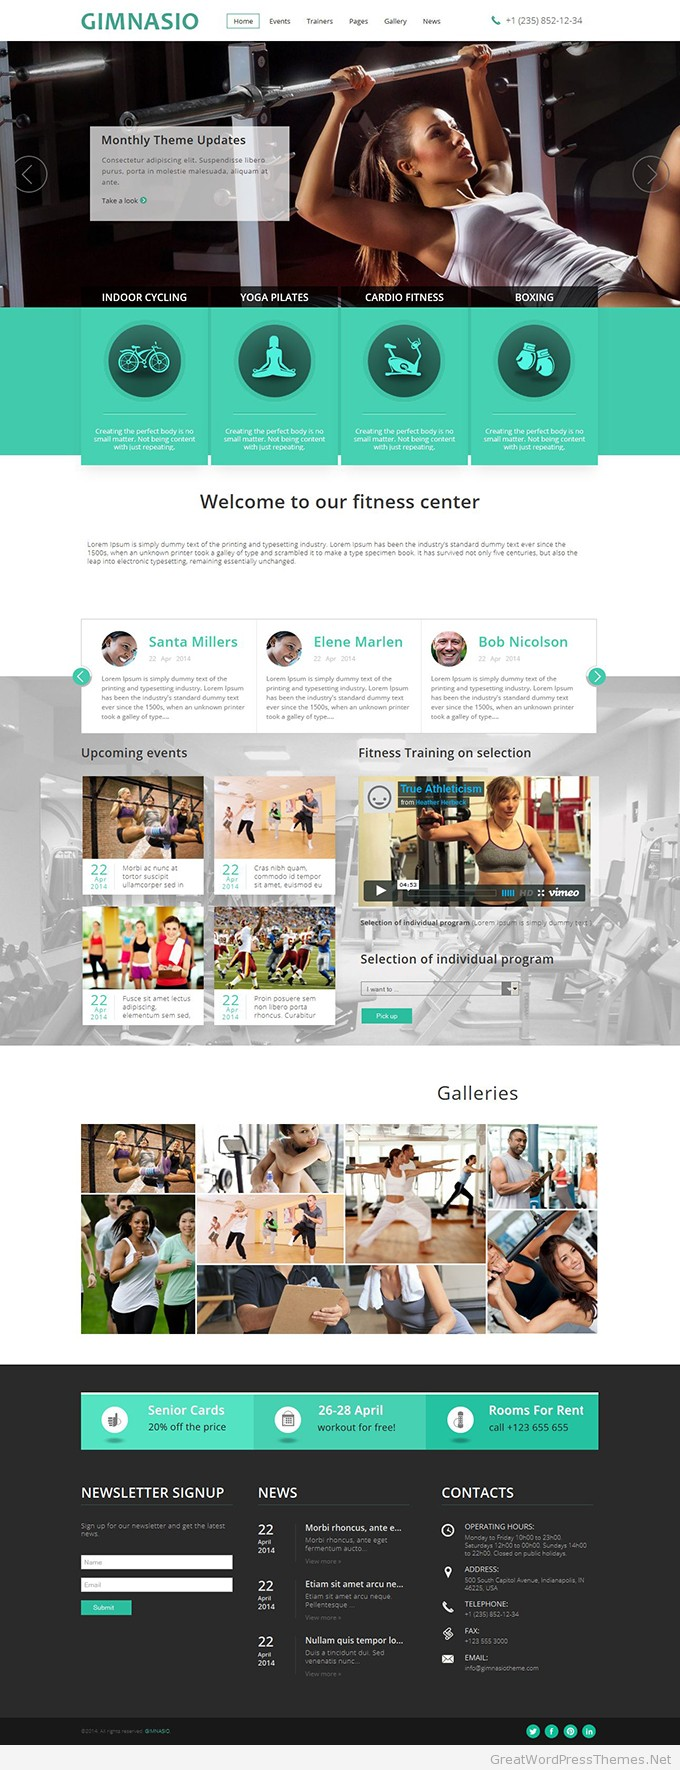 Gimnasio-Responsive-WordPress-Theme